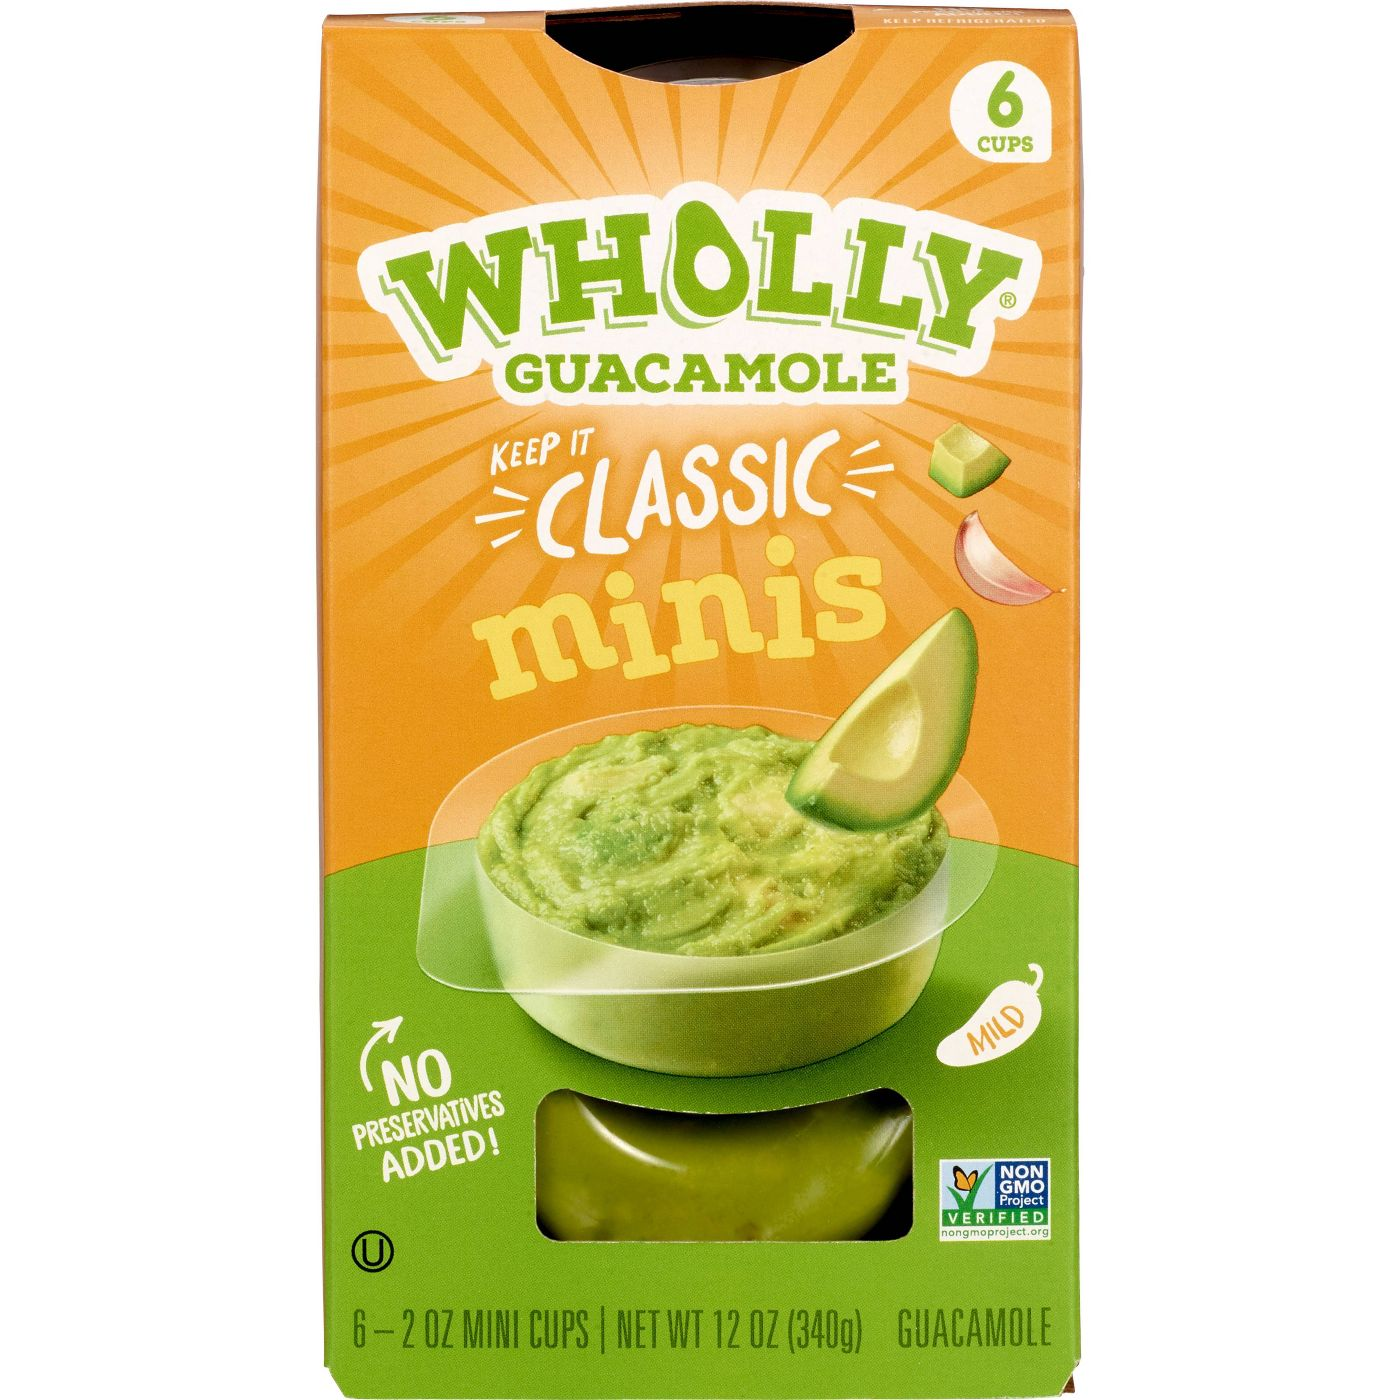 pack of Wholly Guacamole Classic Mini Bowls